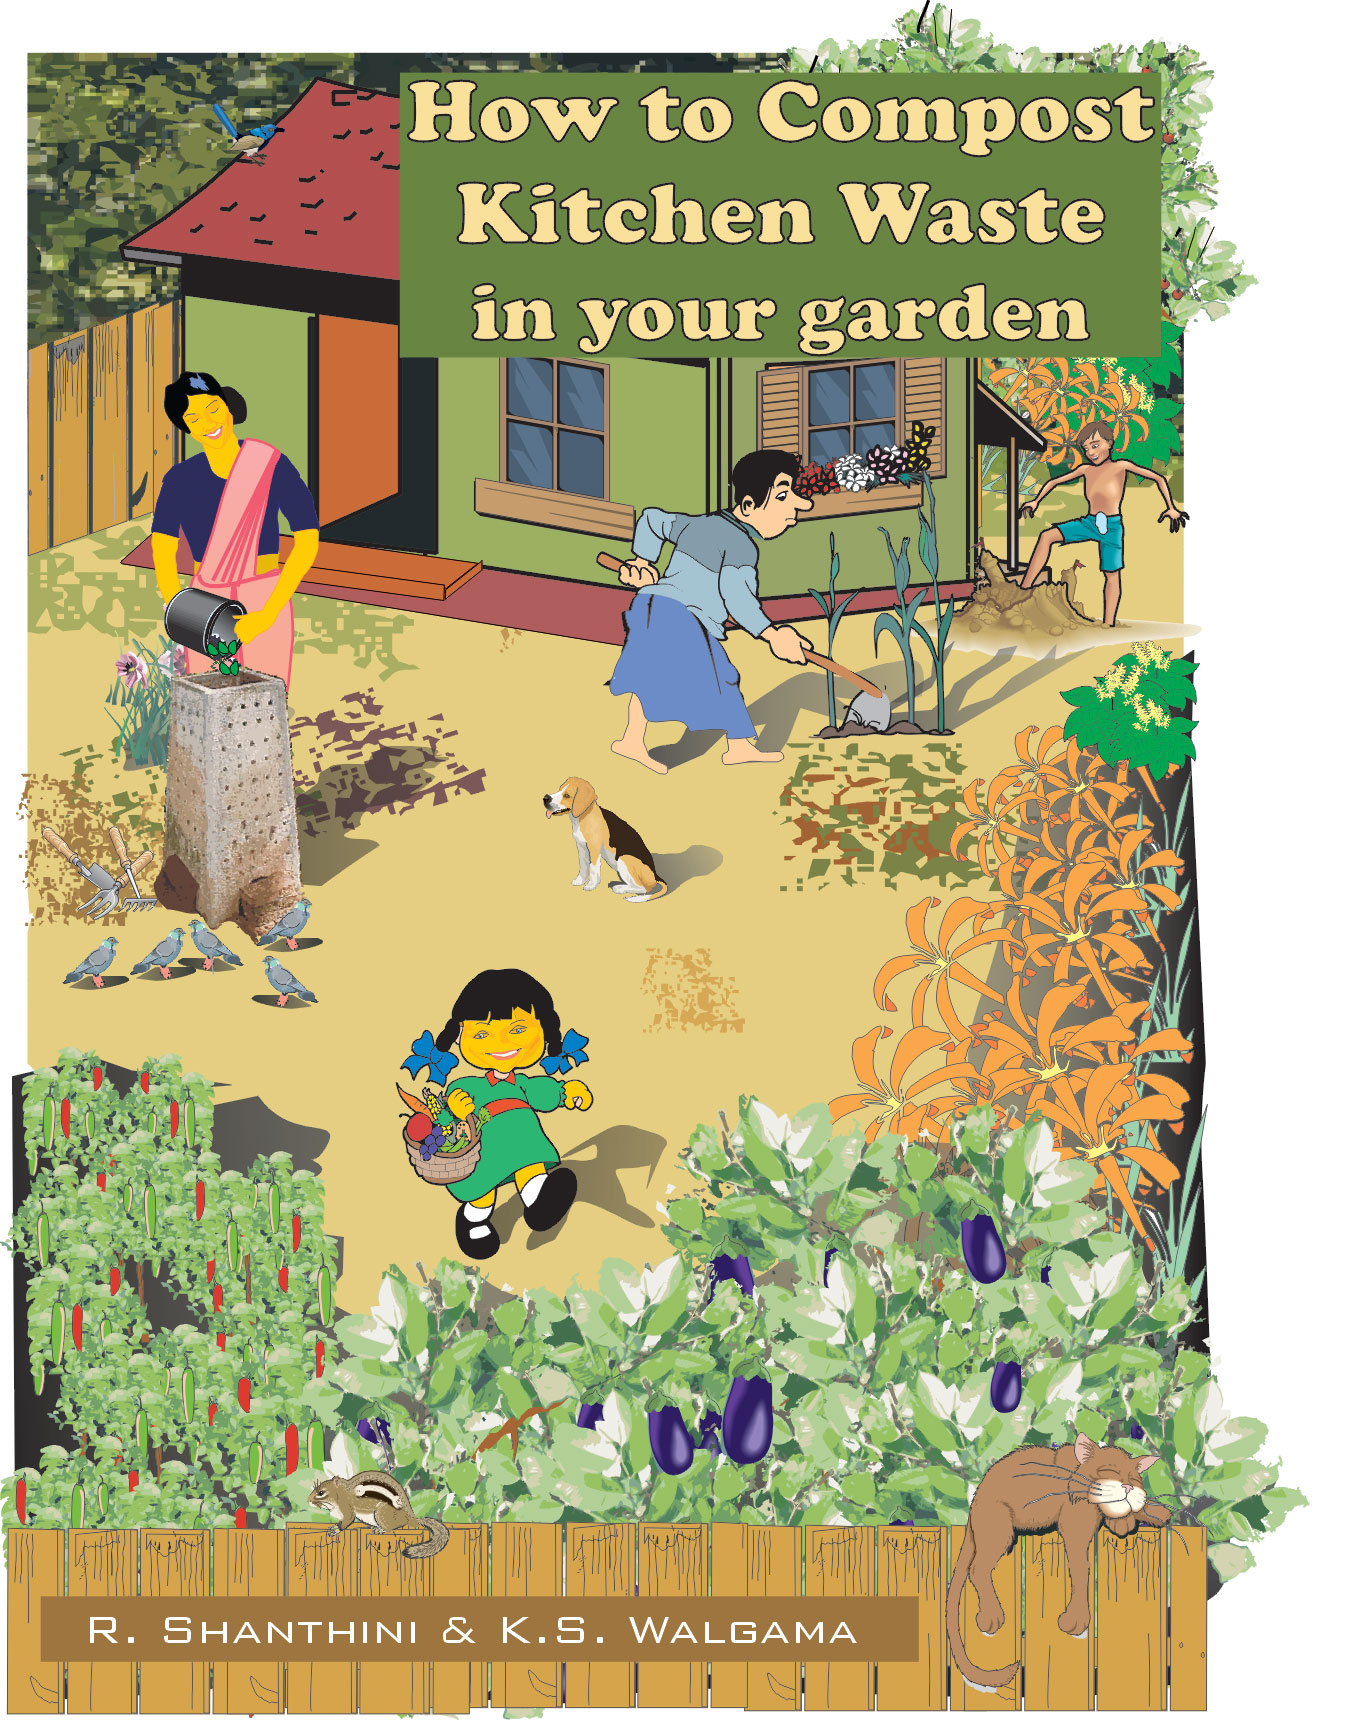 "Cover page of the book  ""How ro Compost Kitchen Waste in your garden"" by Prof. R. Shanthini and Prof. K.S. Walgama; published in 2003"